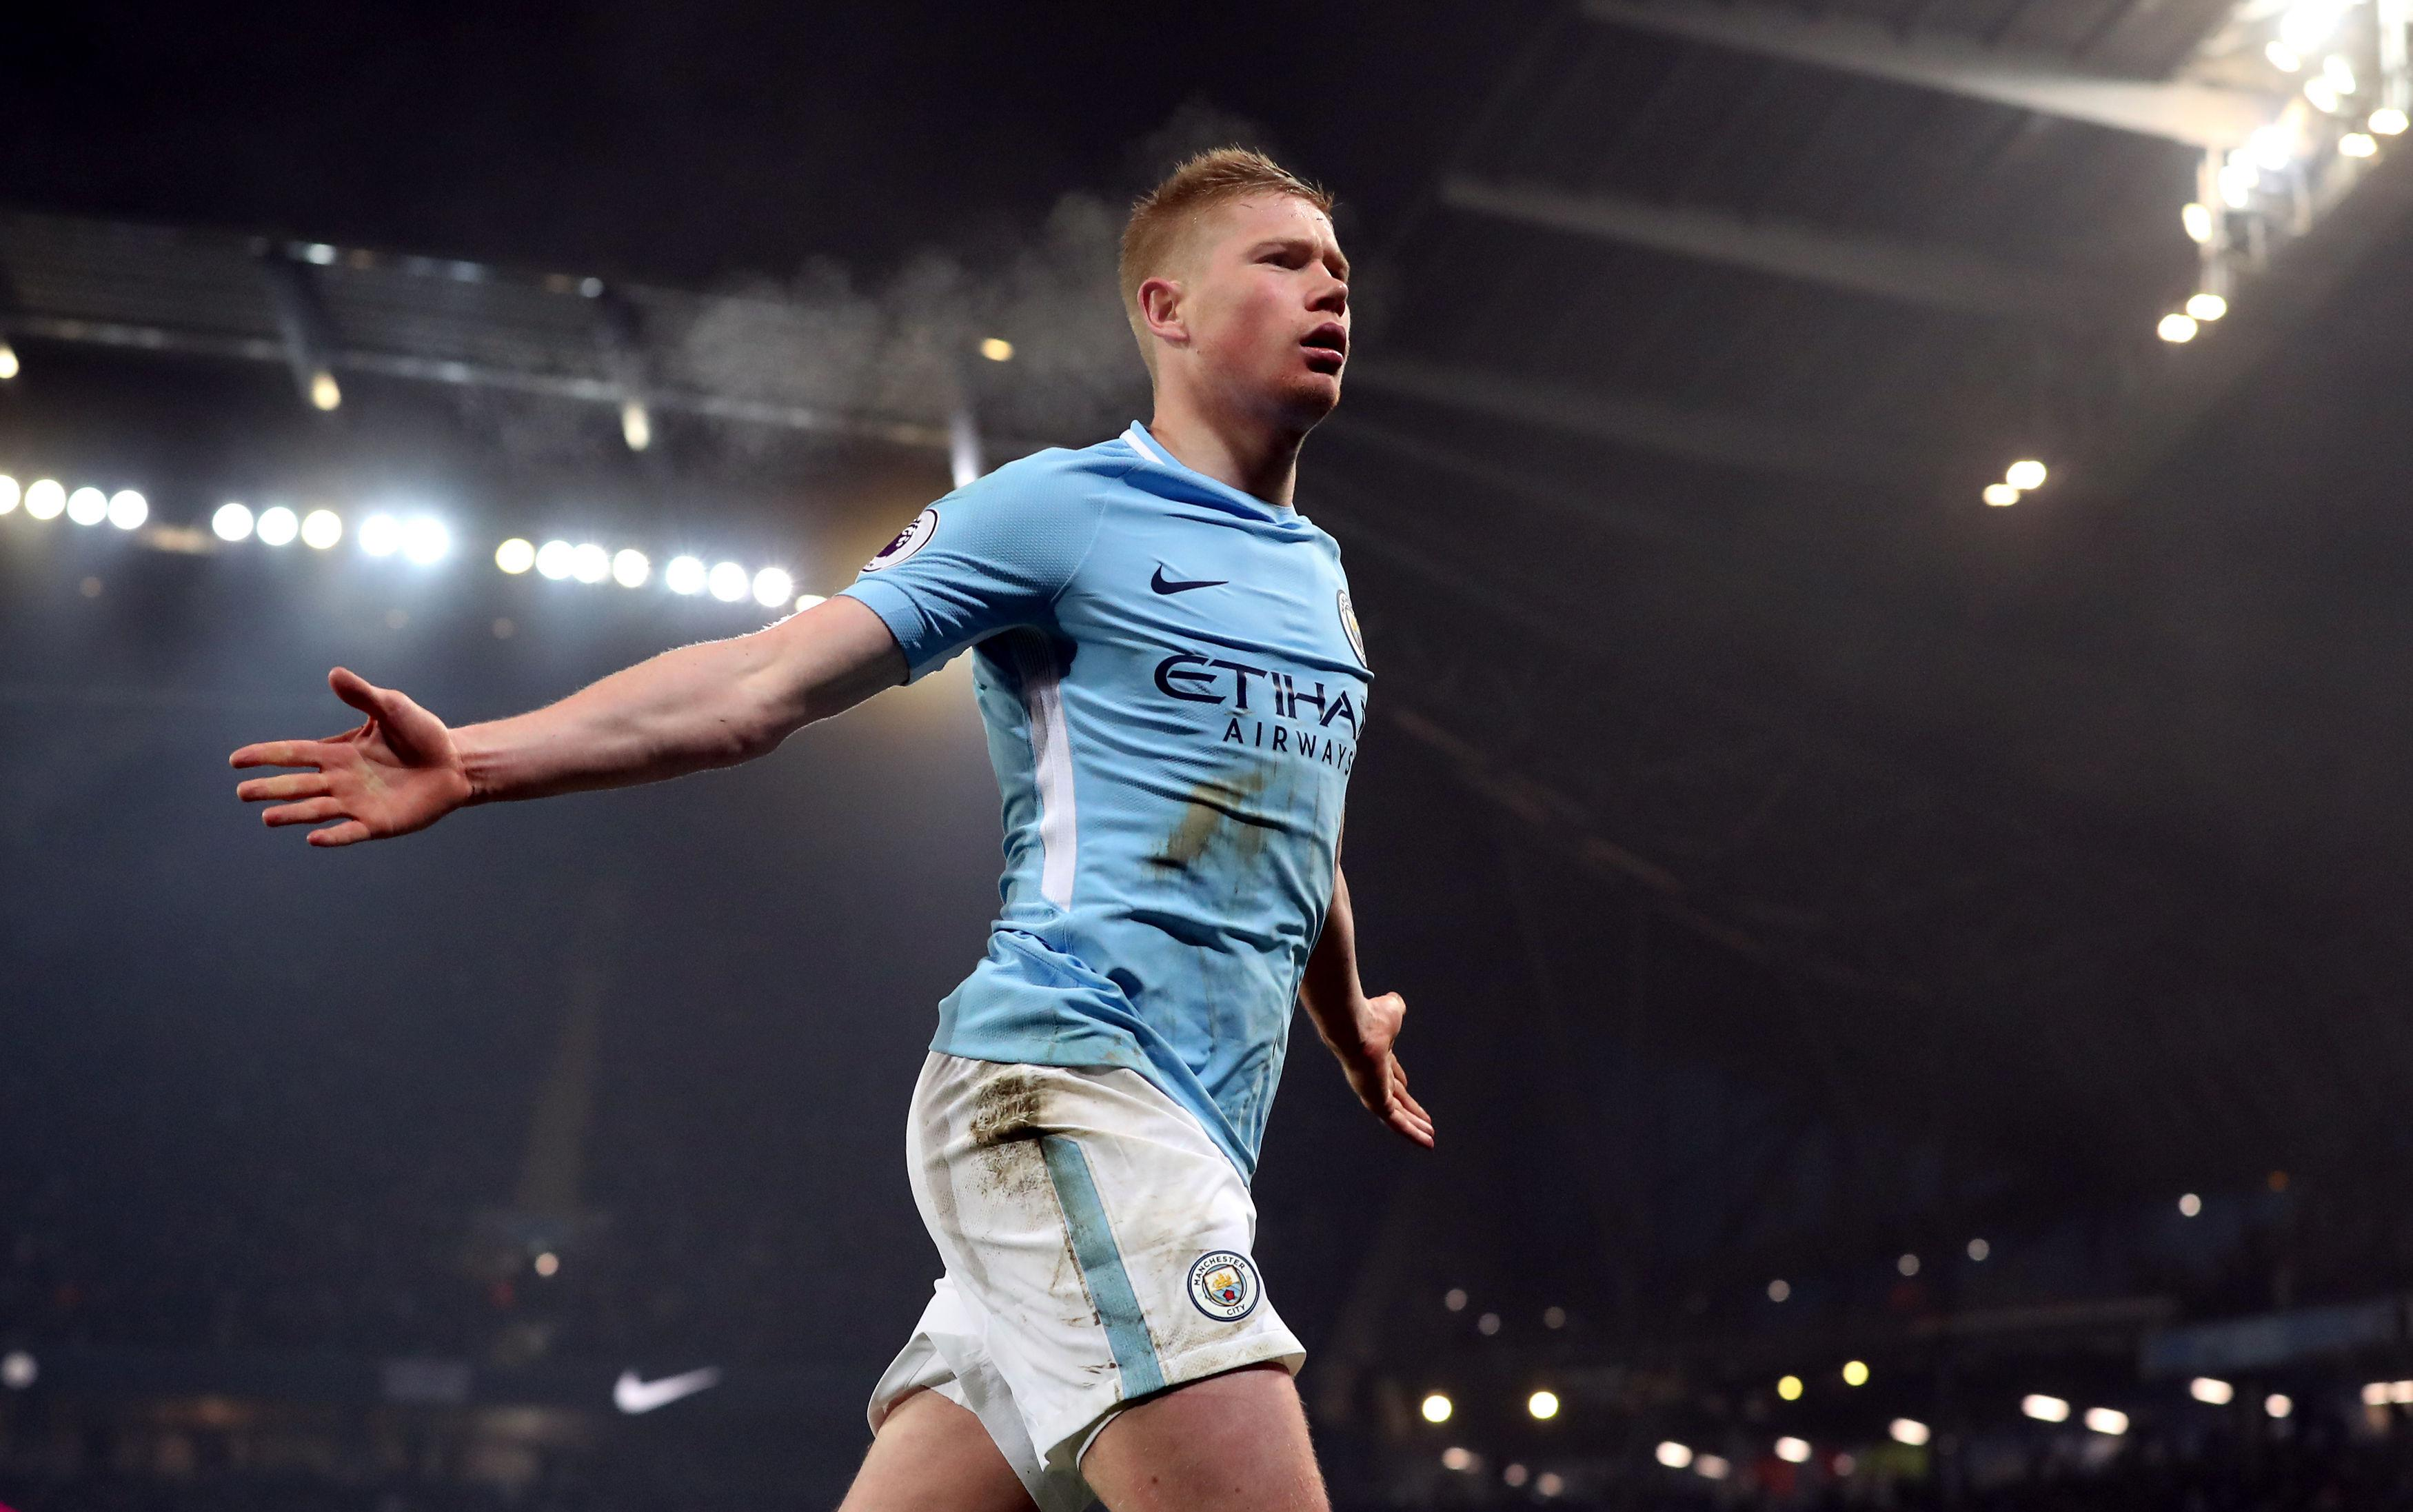 De Bruyne scored City's second goal